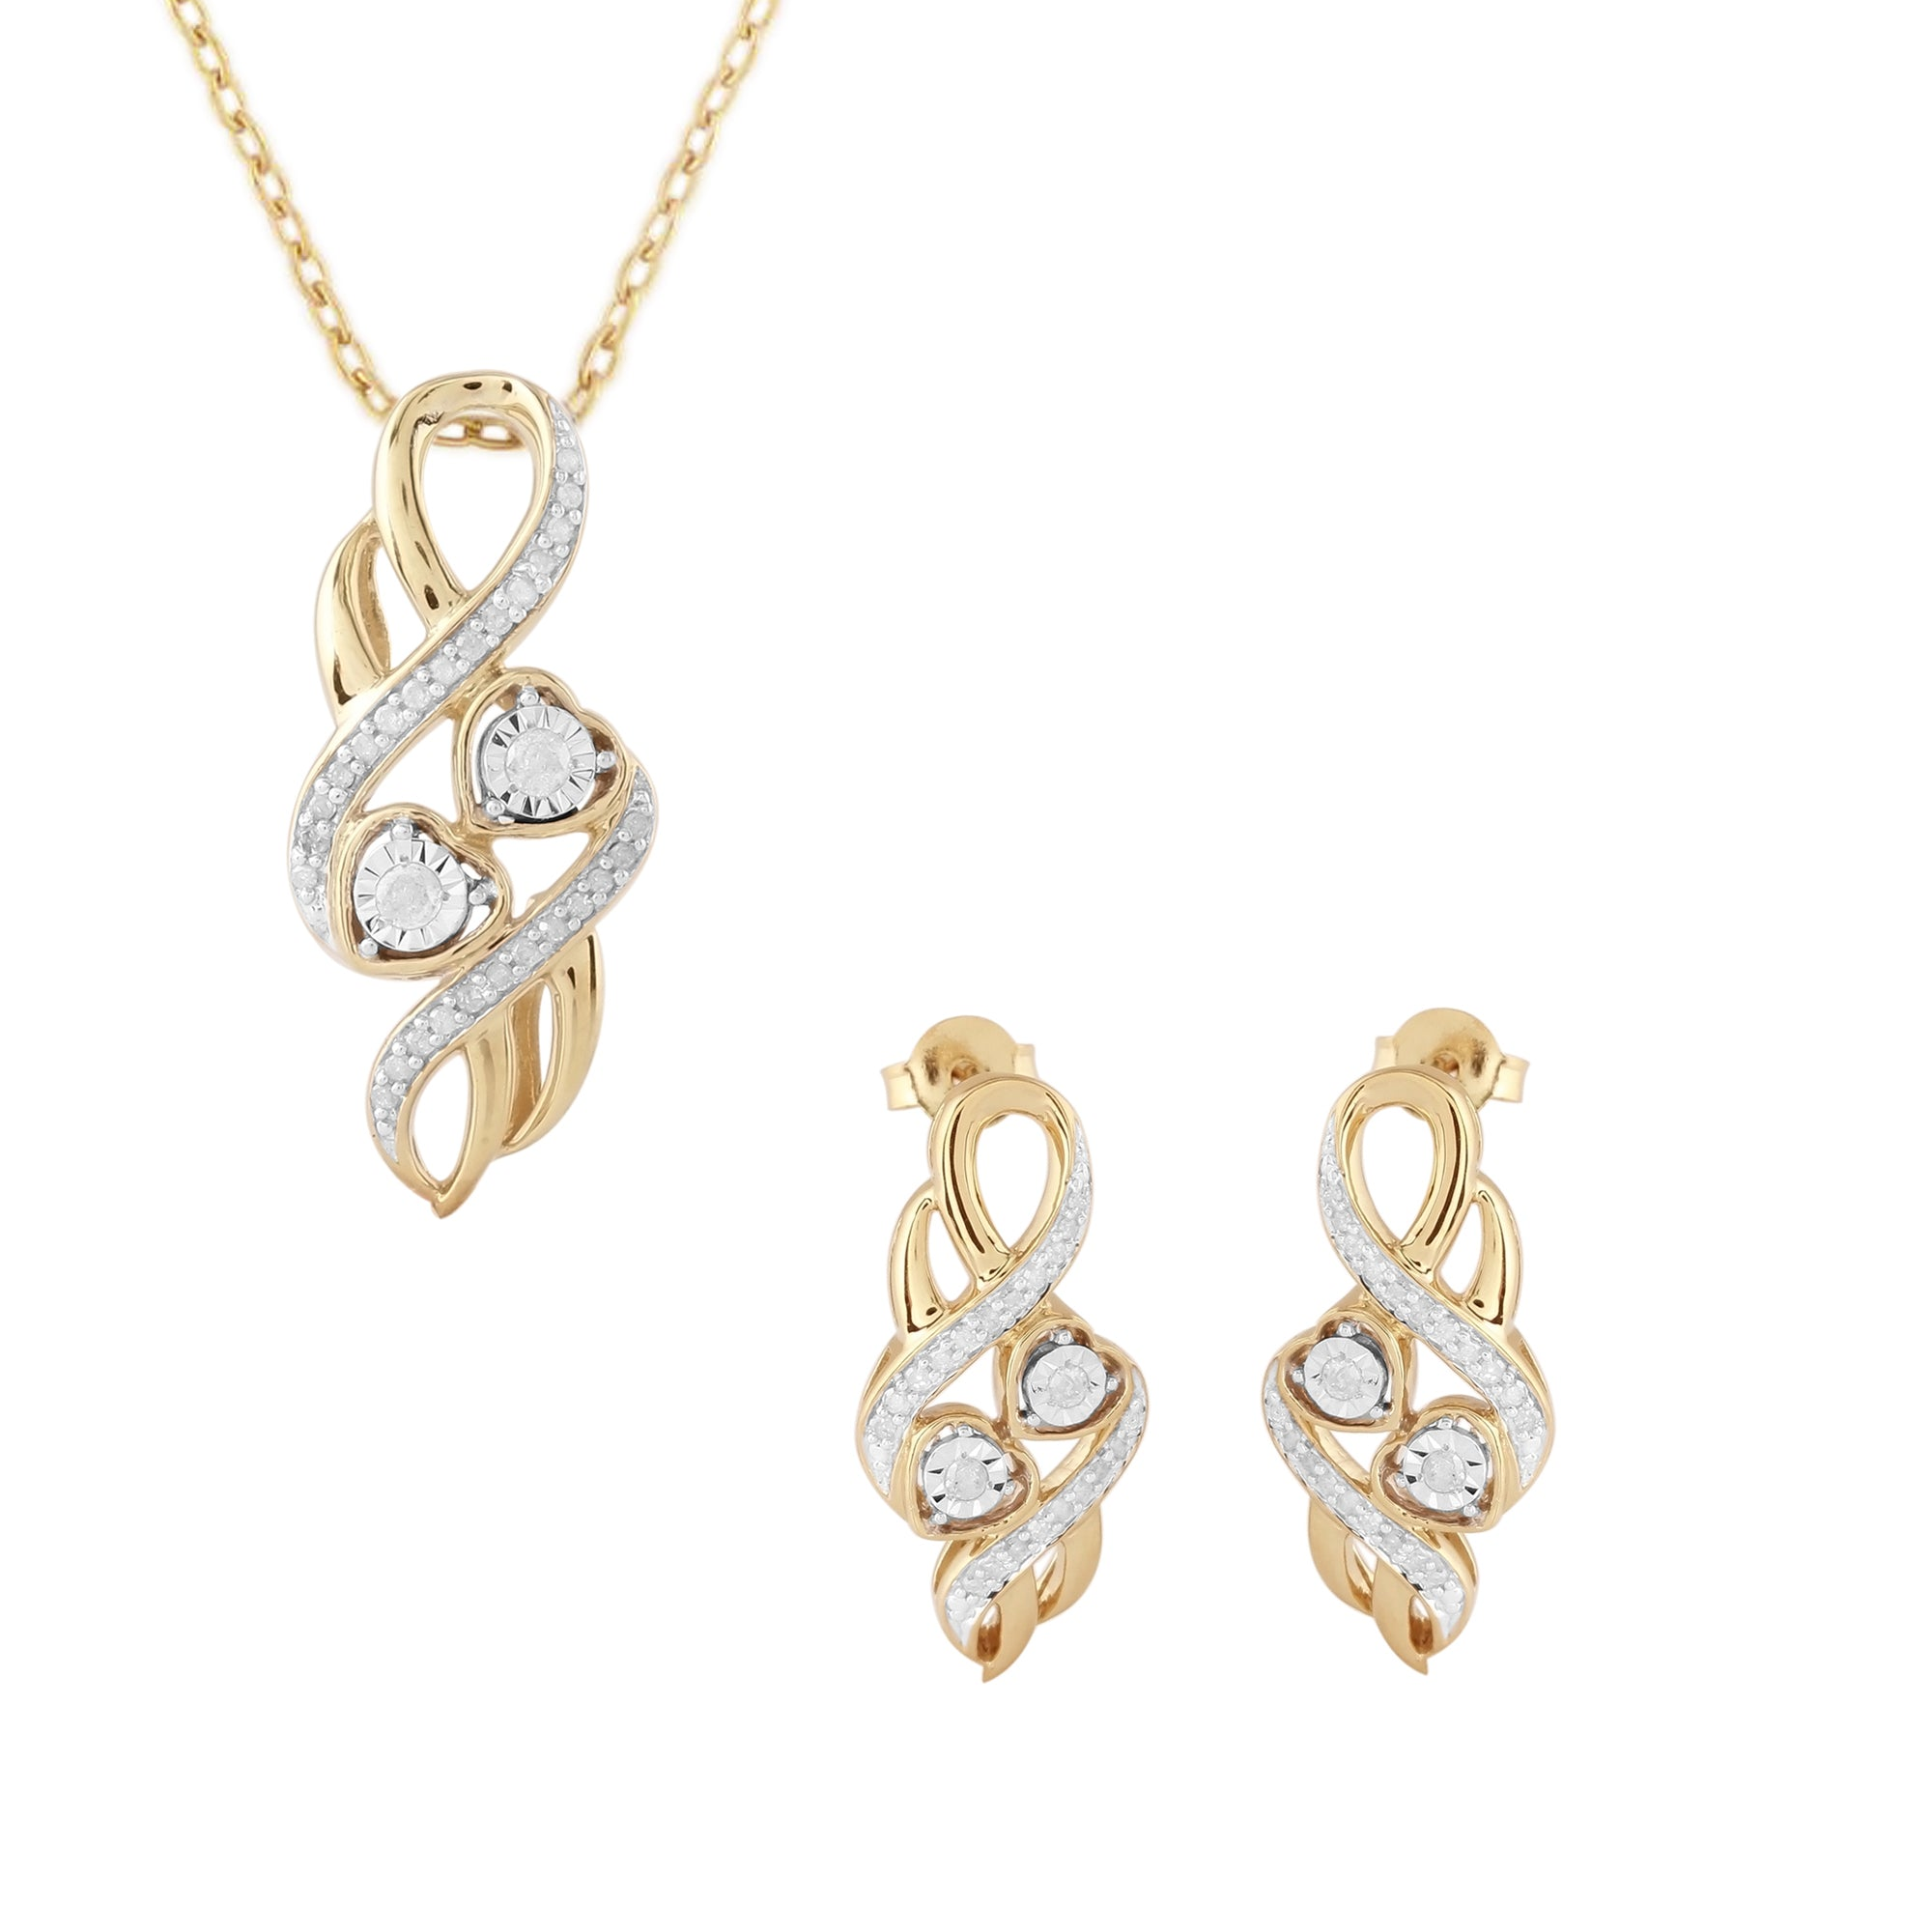 jewelry set necklace pic caymancode gold latest modern design